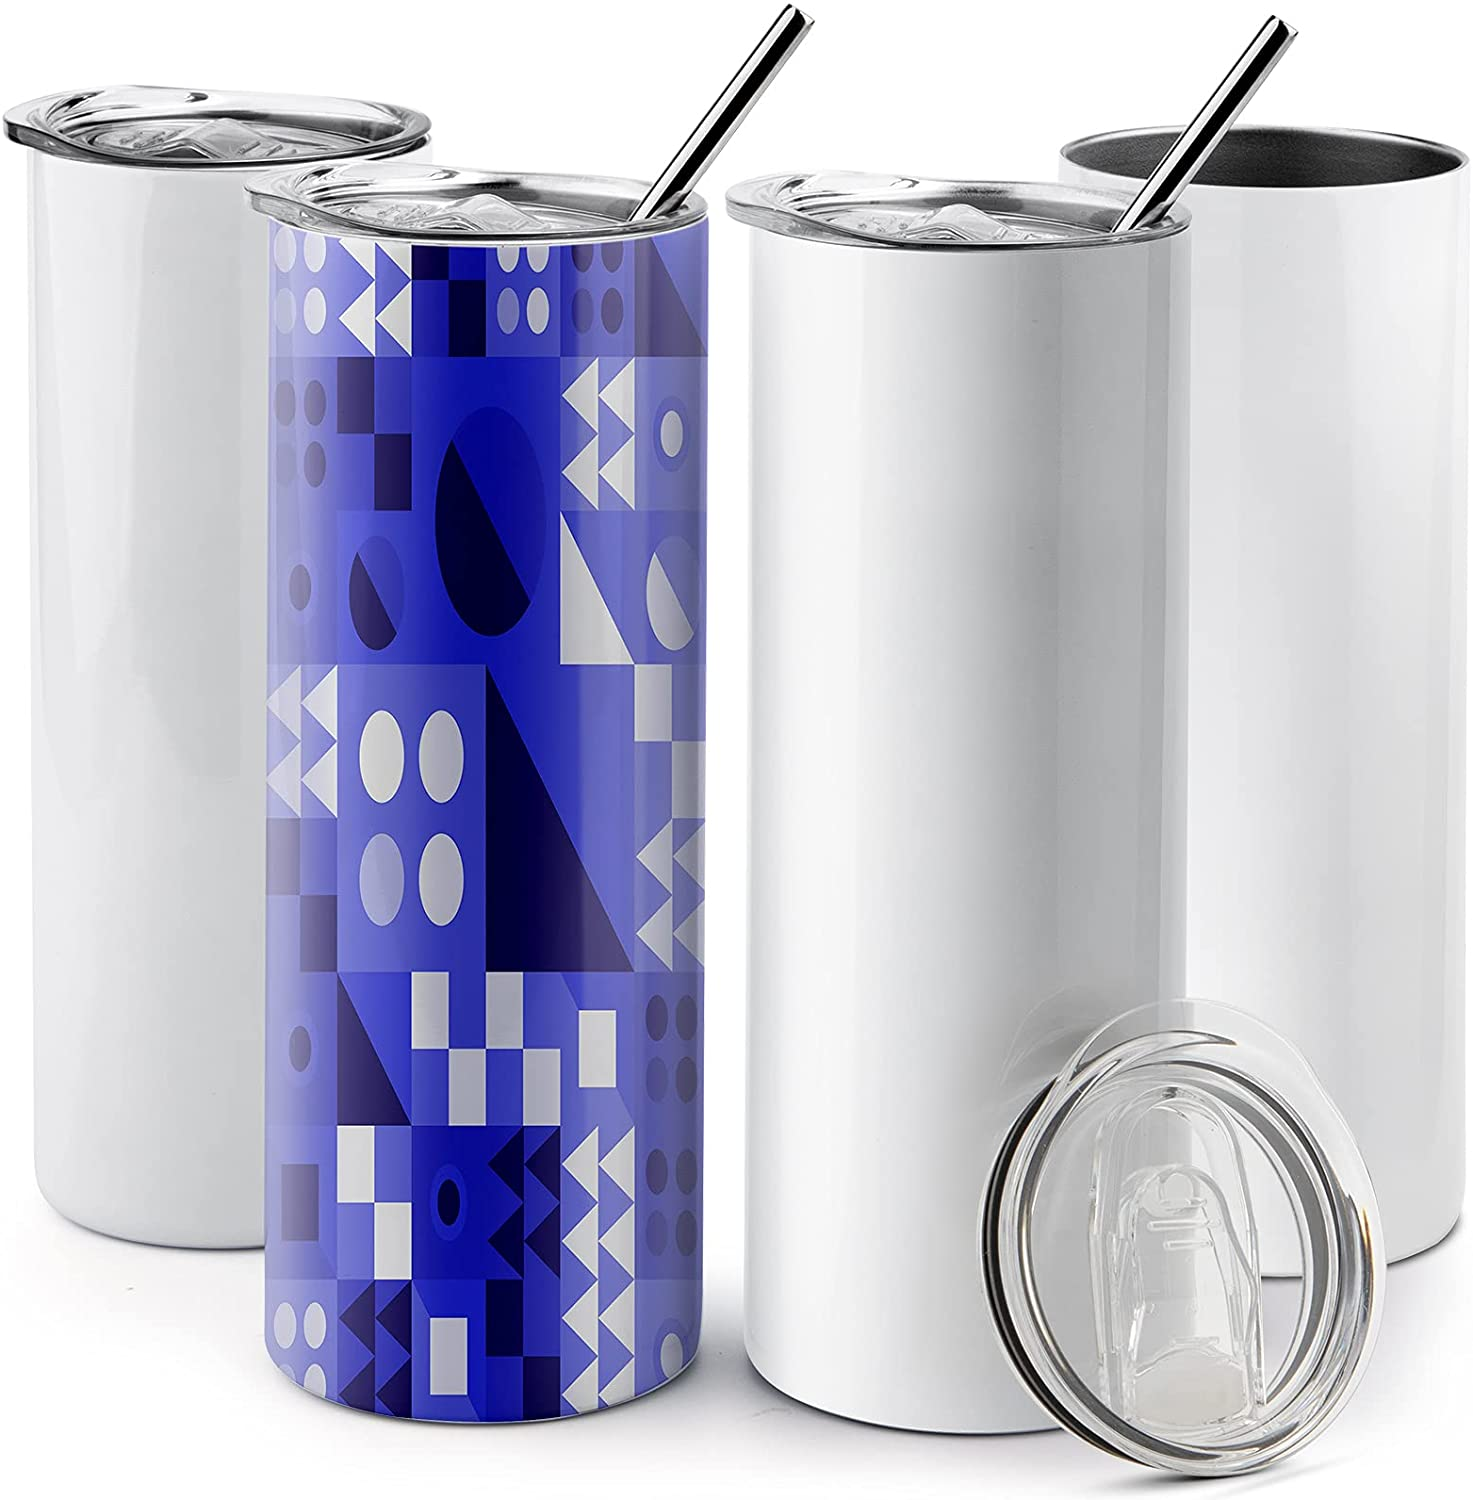 20 Oz Stainless Steel Skinny Tumbler, 4 Pack Double Wall Insulated Tumblers with Lids and Straws, Insulated Travel Water Tumbler Cup, Slim Vacuum Tumbler